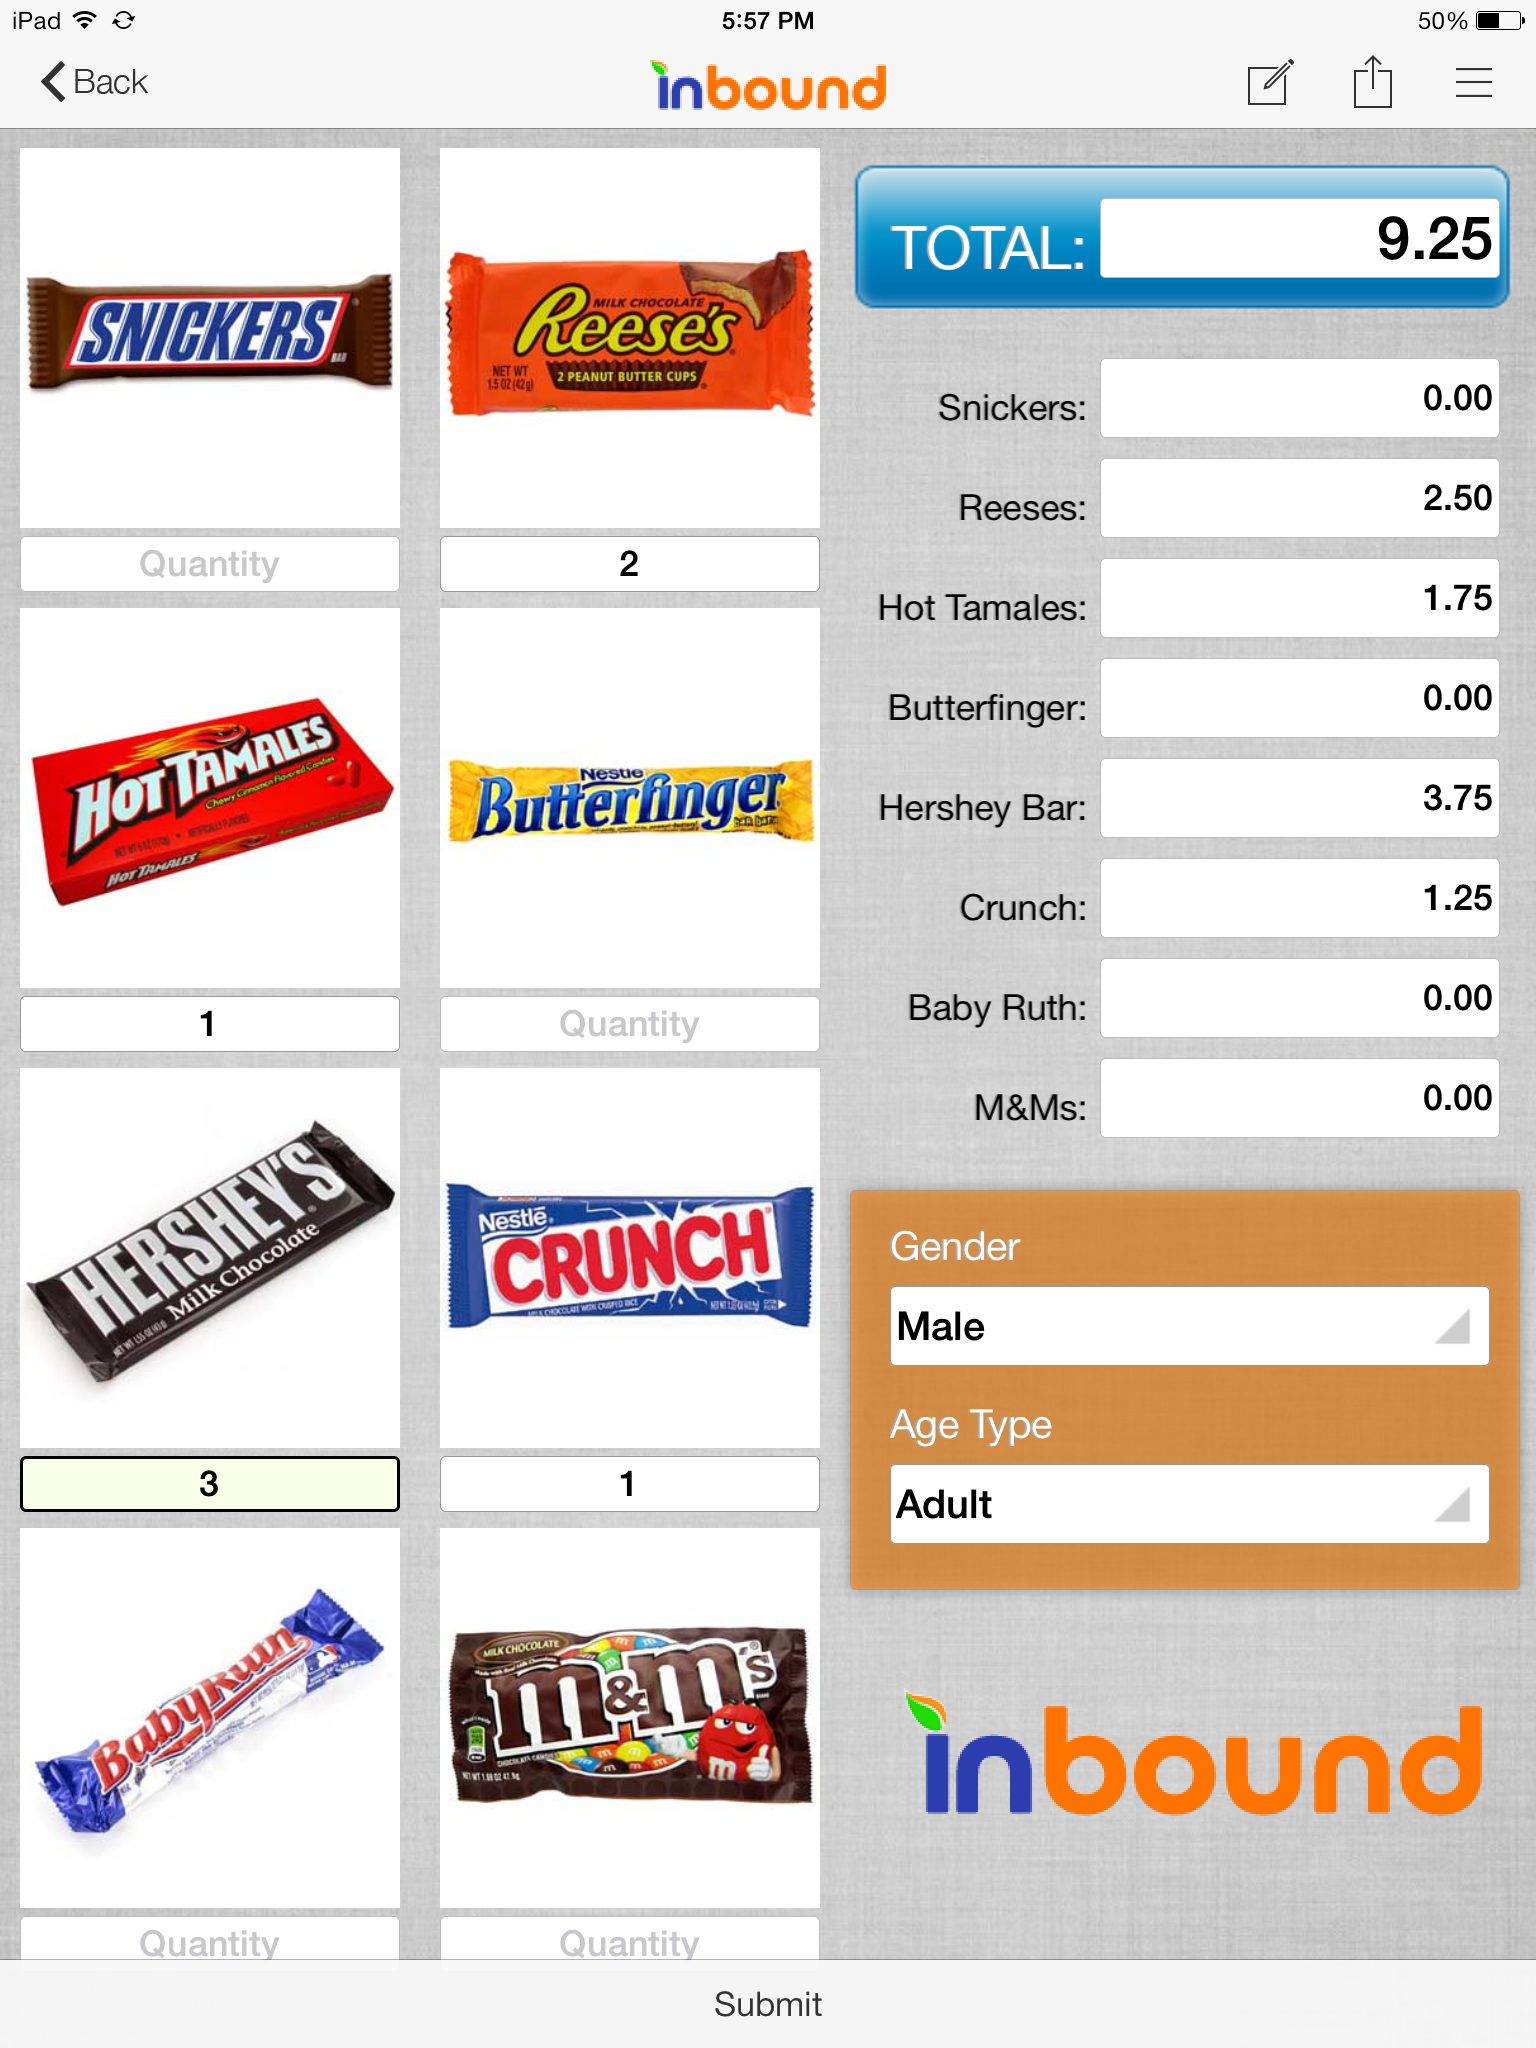 Example cash register form for iPad on inBound app